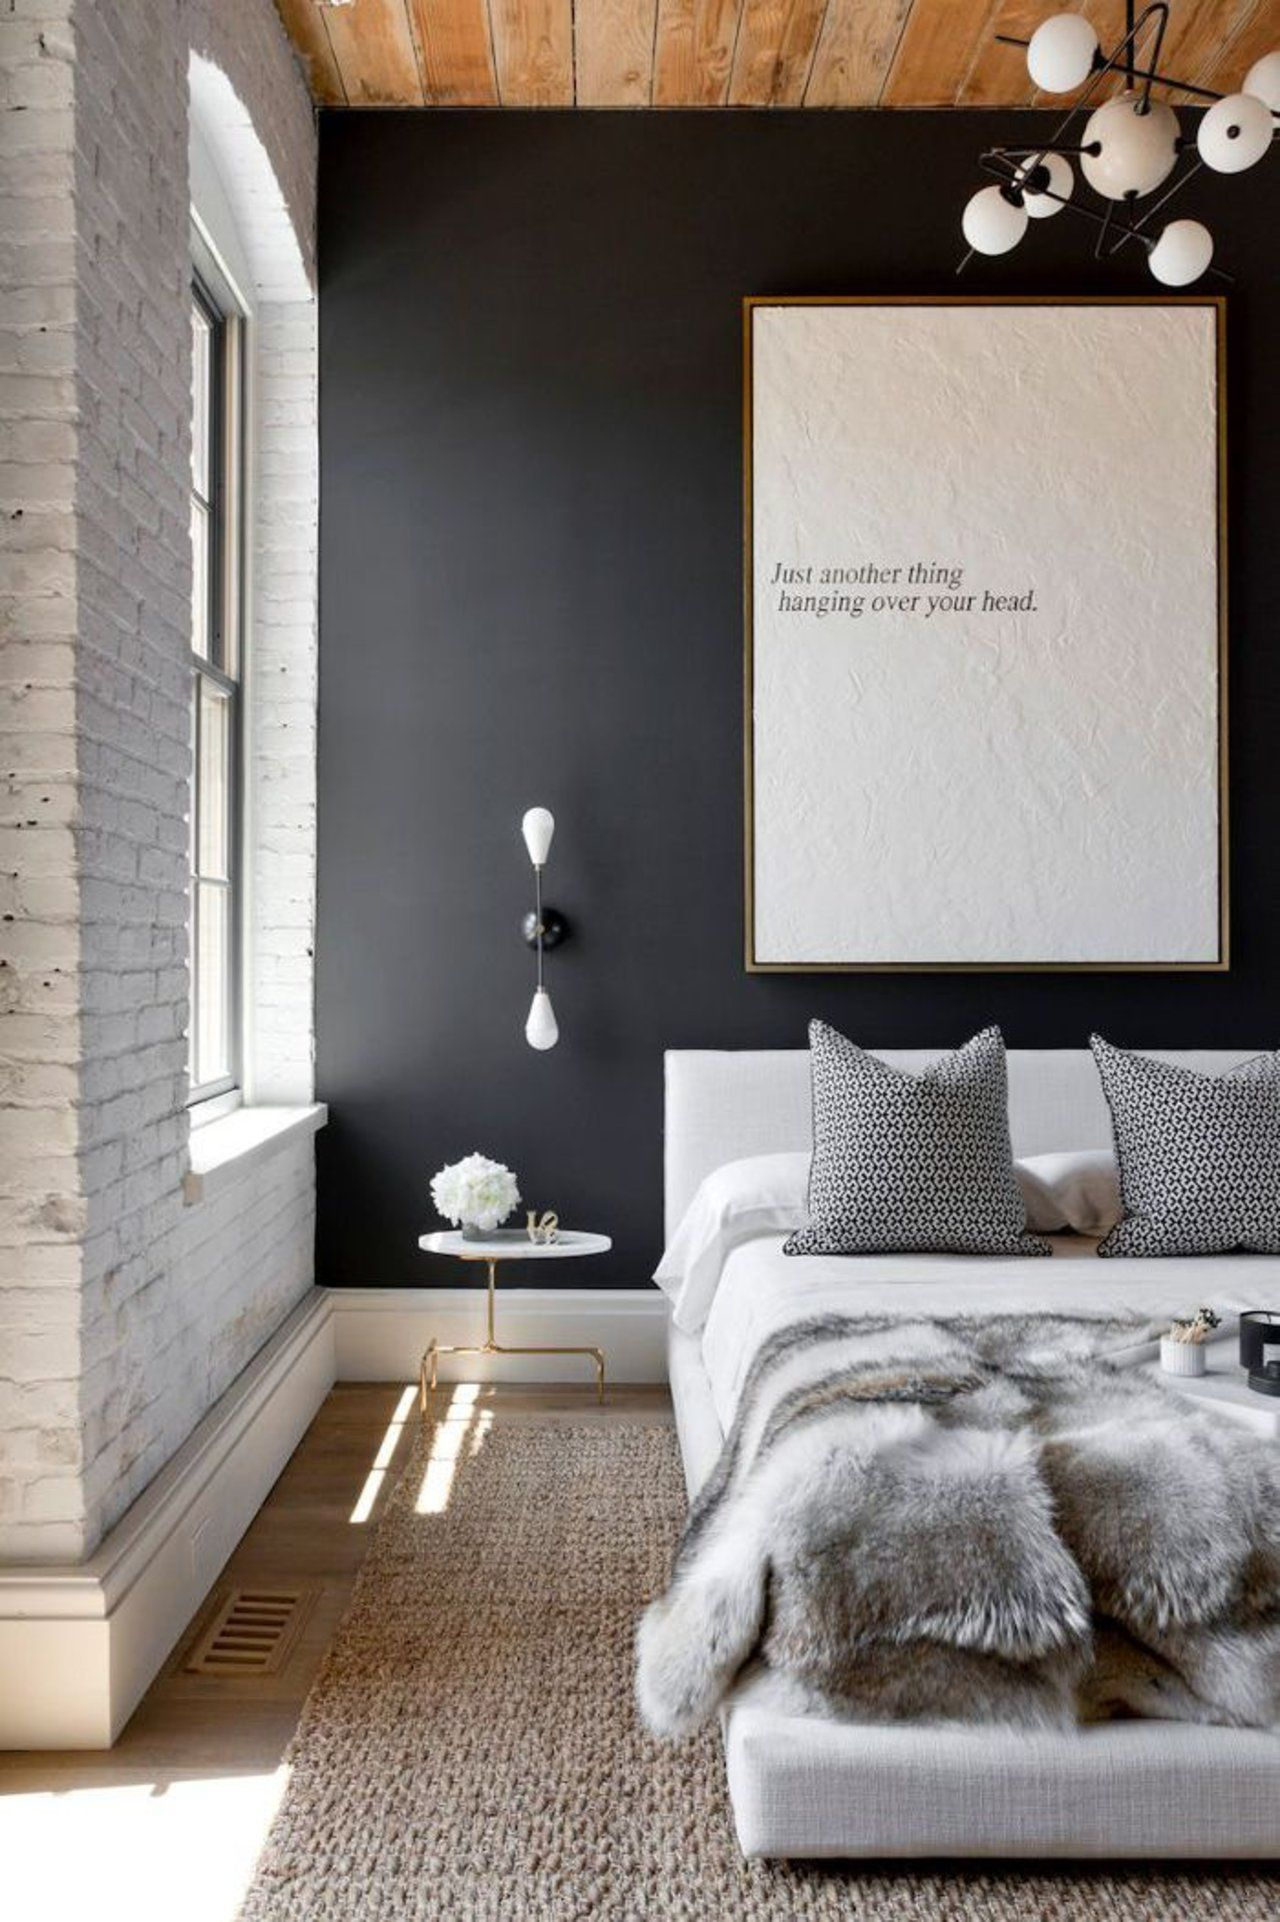 Charmant Learn How To Make Your Bedroom Feel More Grown Up On Our Blog!